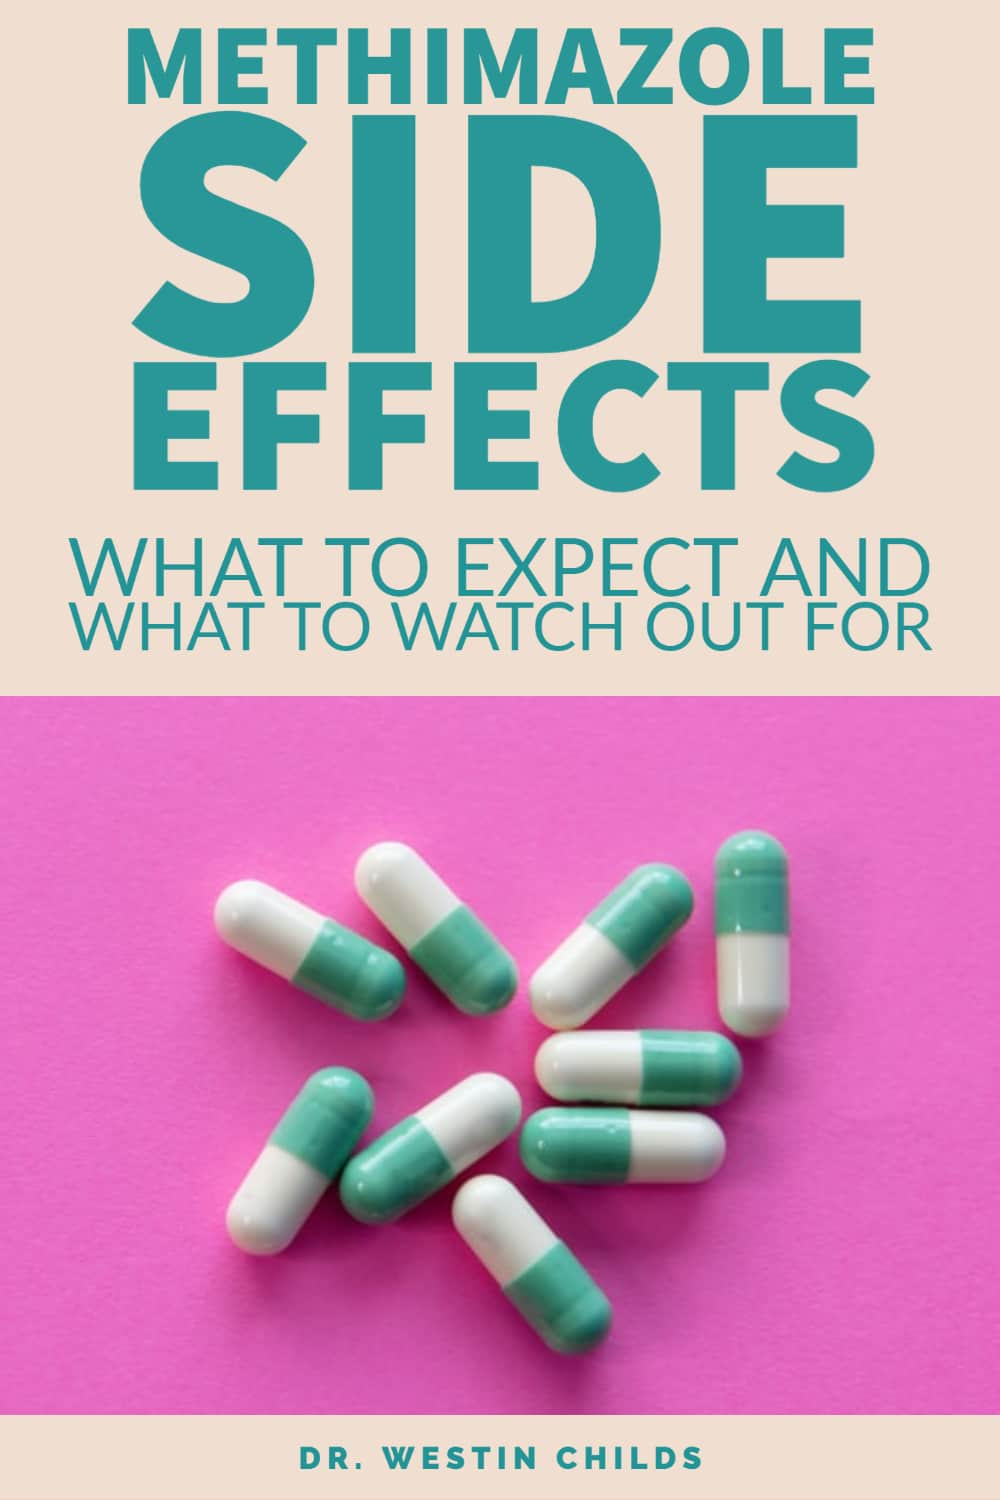 all methimazole side effects you should be aware of